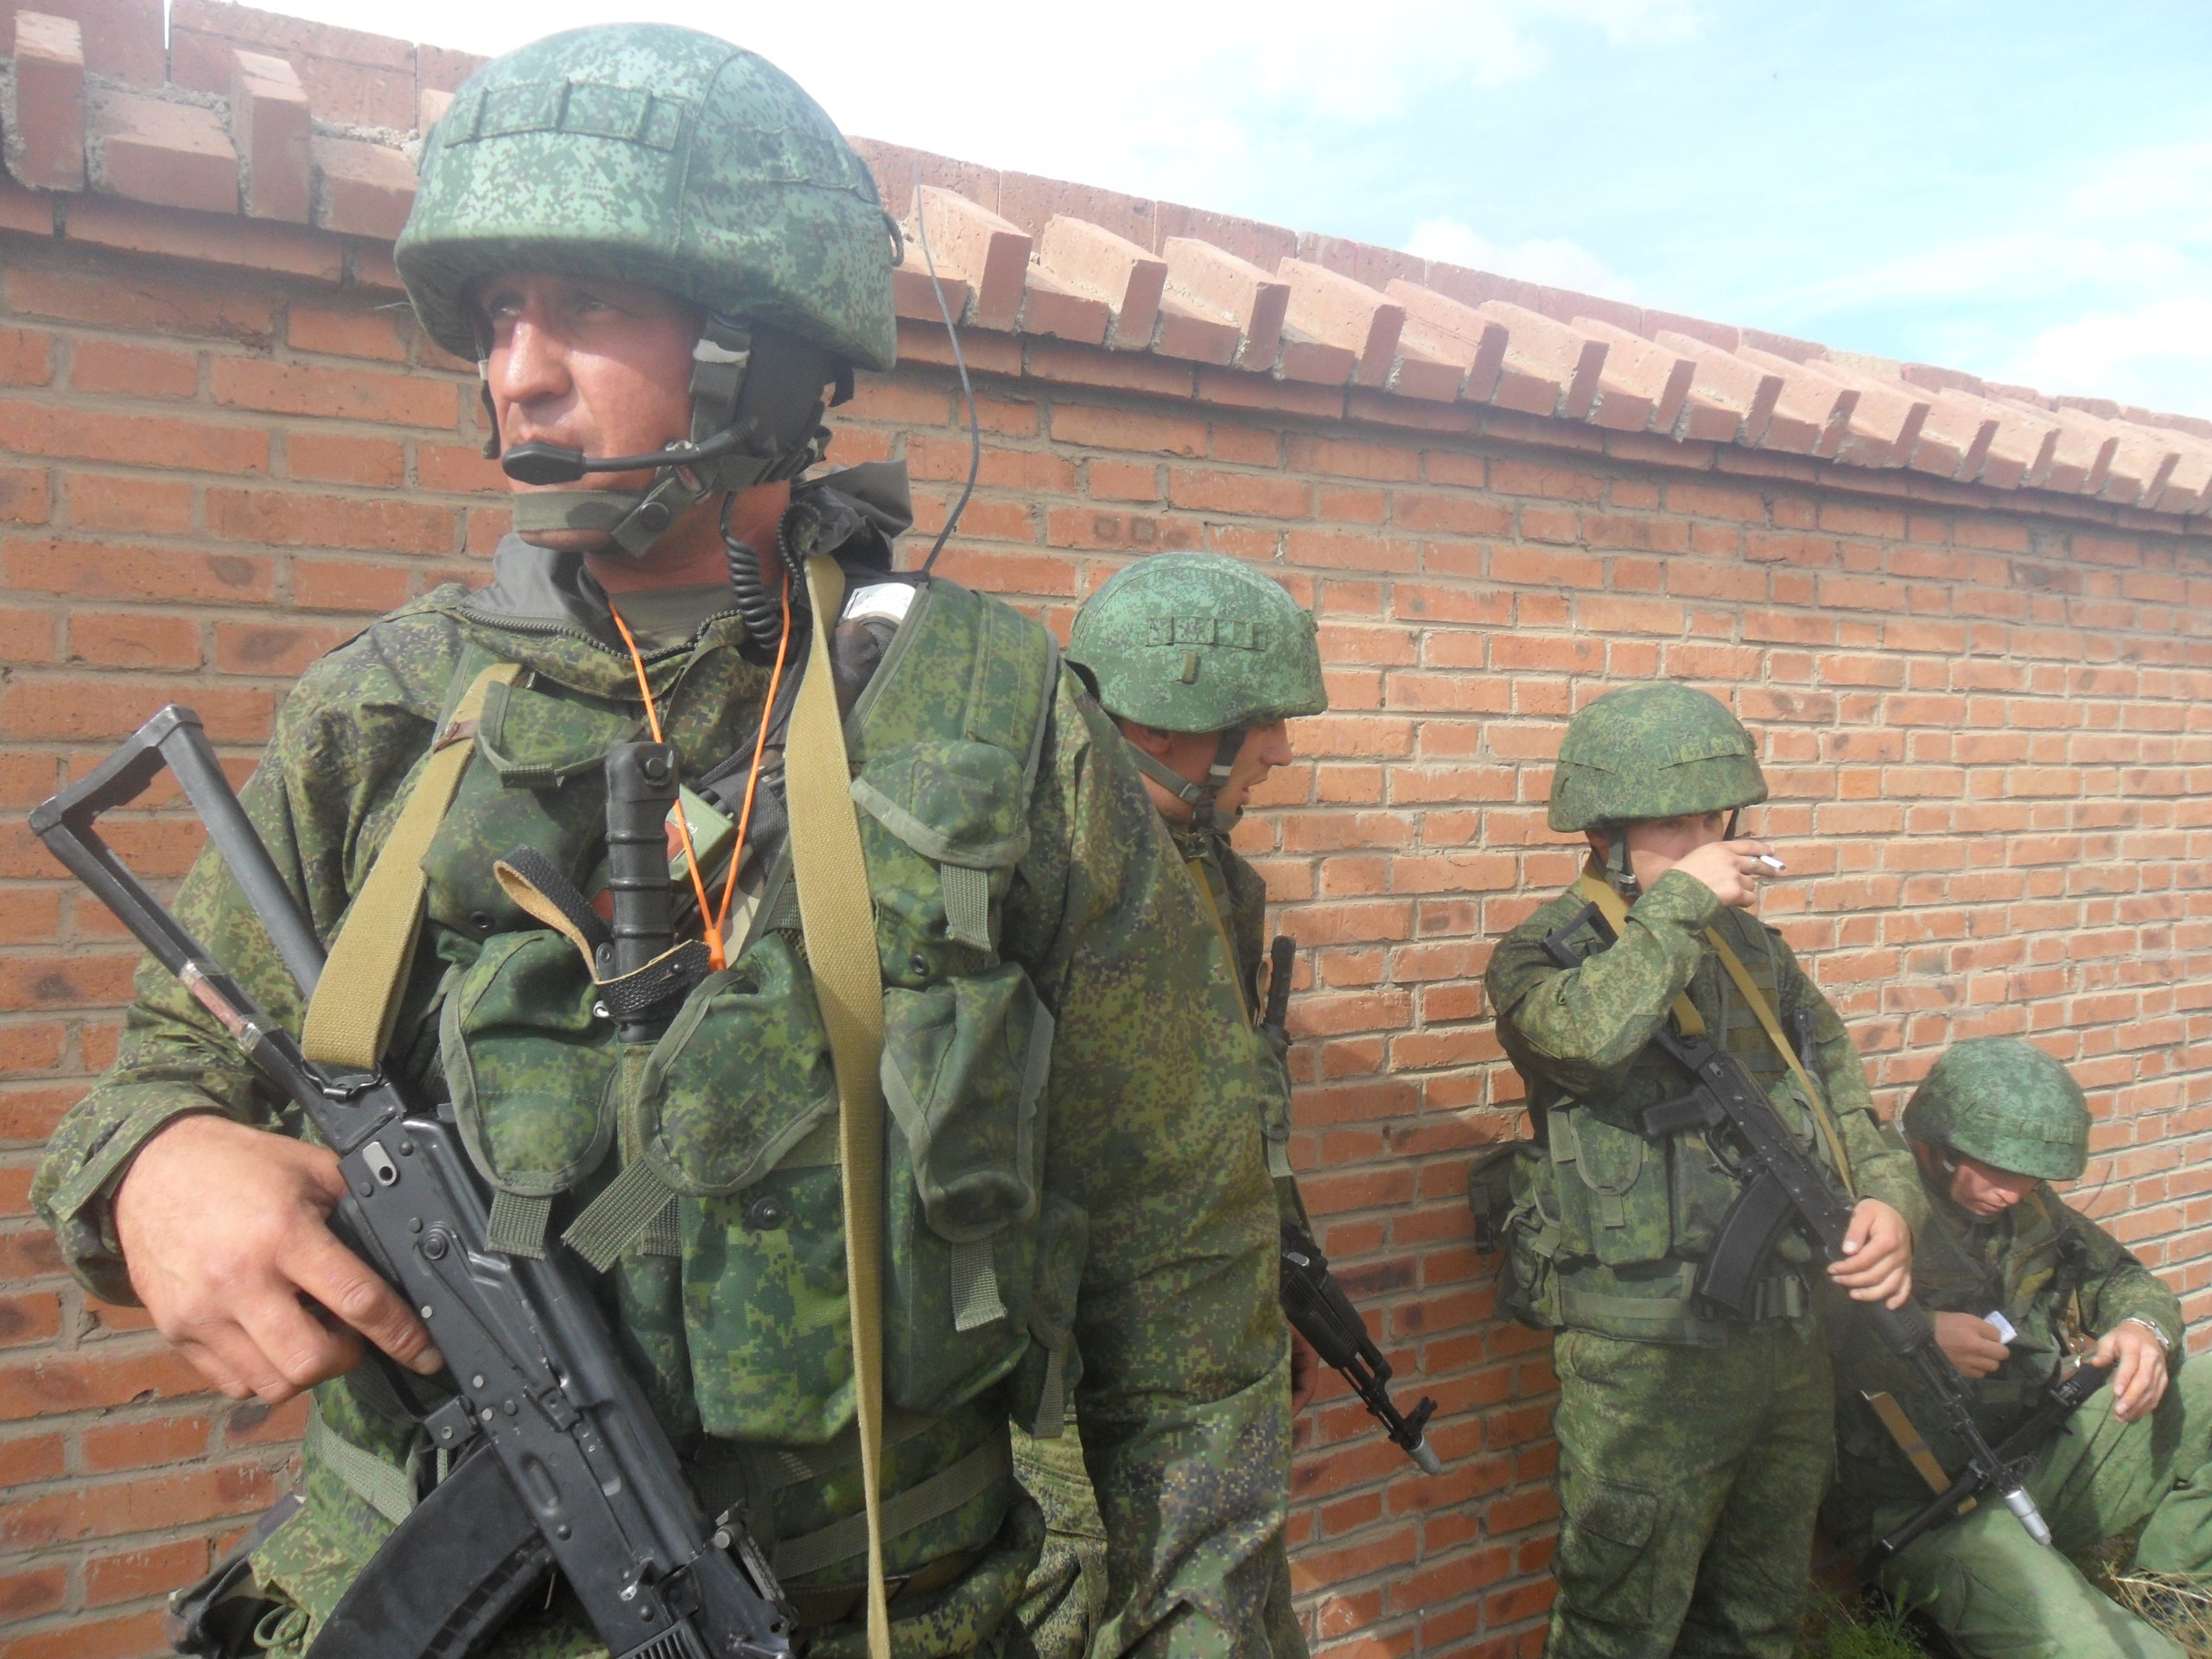 Russian Military Photos and Videos #2 - Page 33 VLtxrr9nWFg